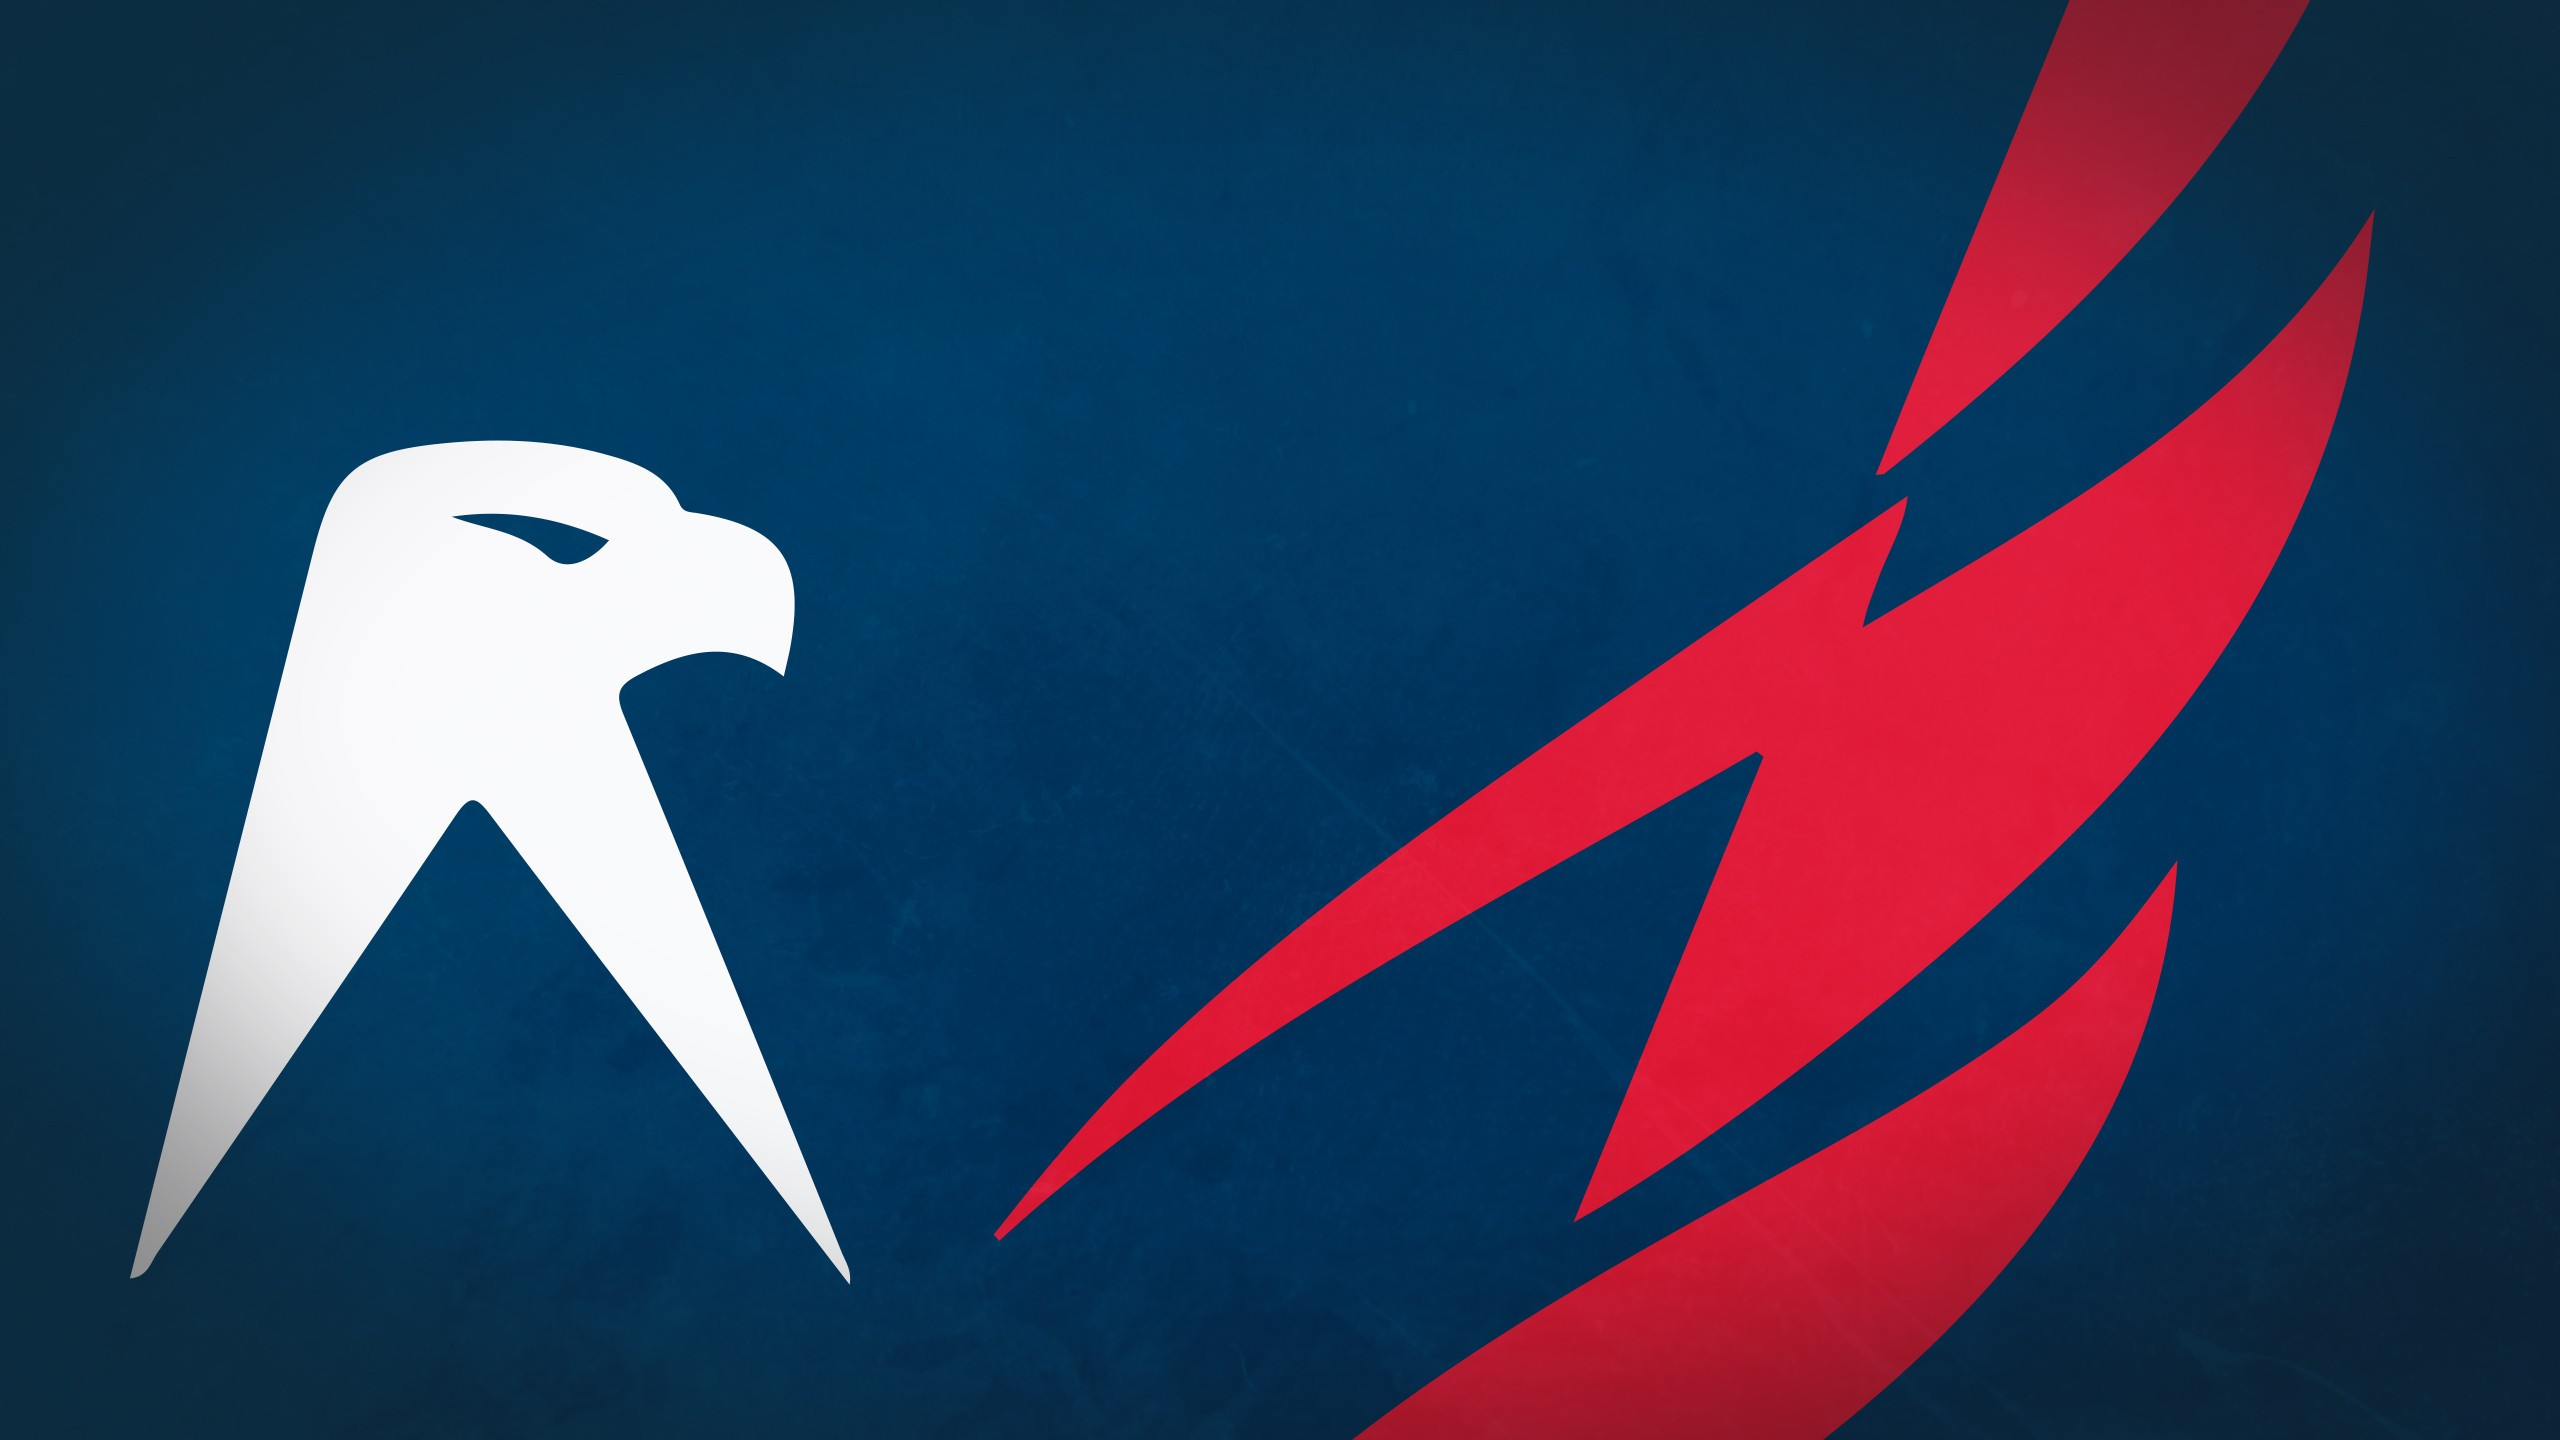 29 Washington Capitals HD Wallpapers Background Images 2560x1440